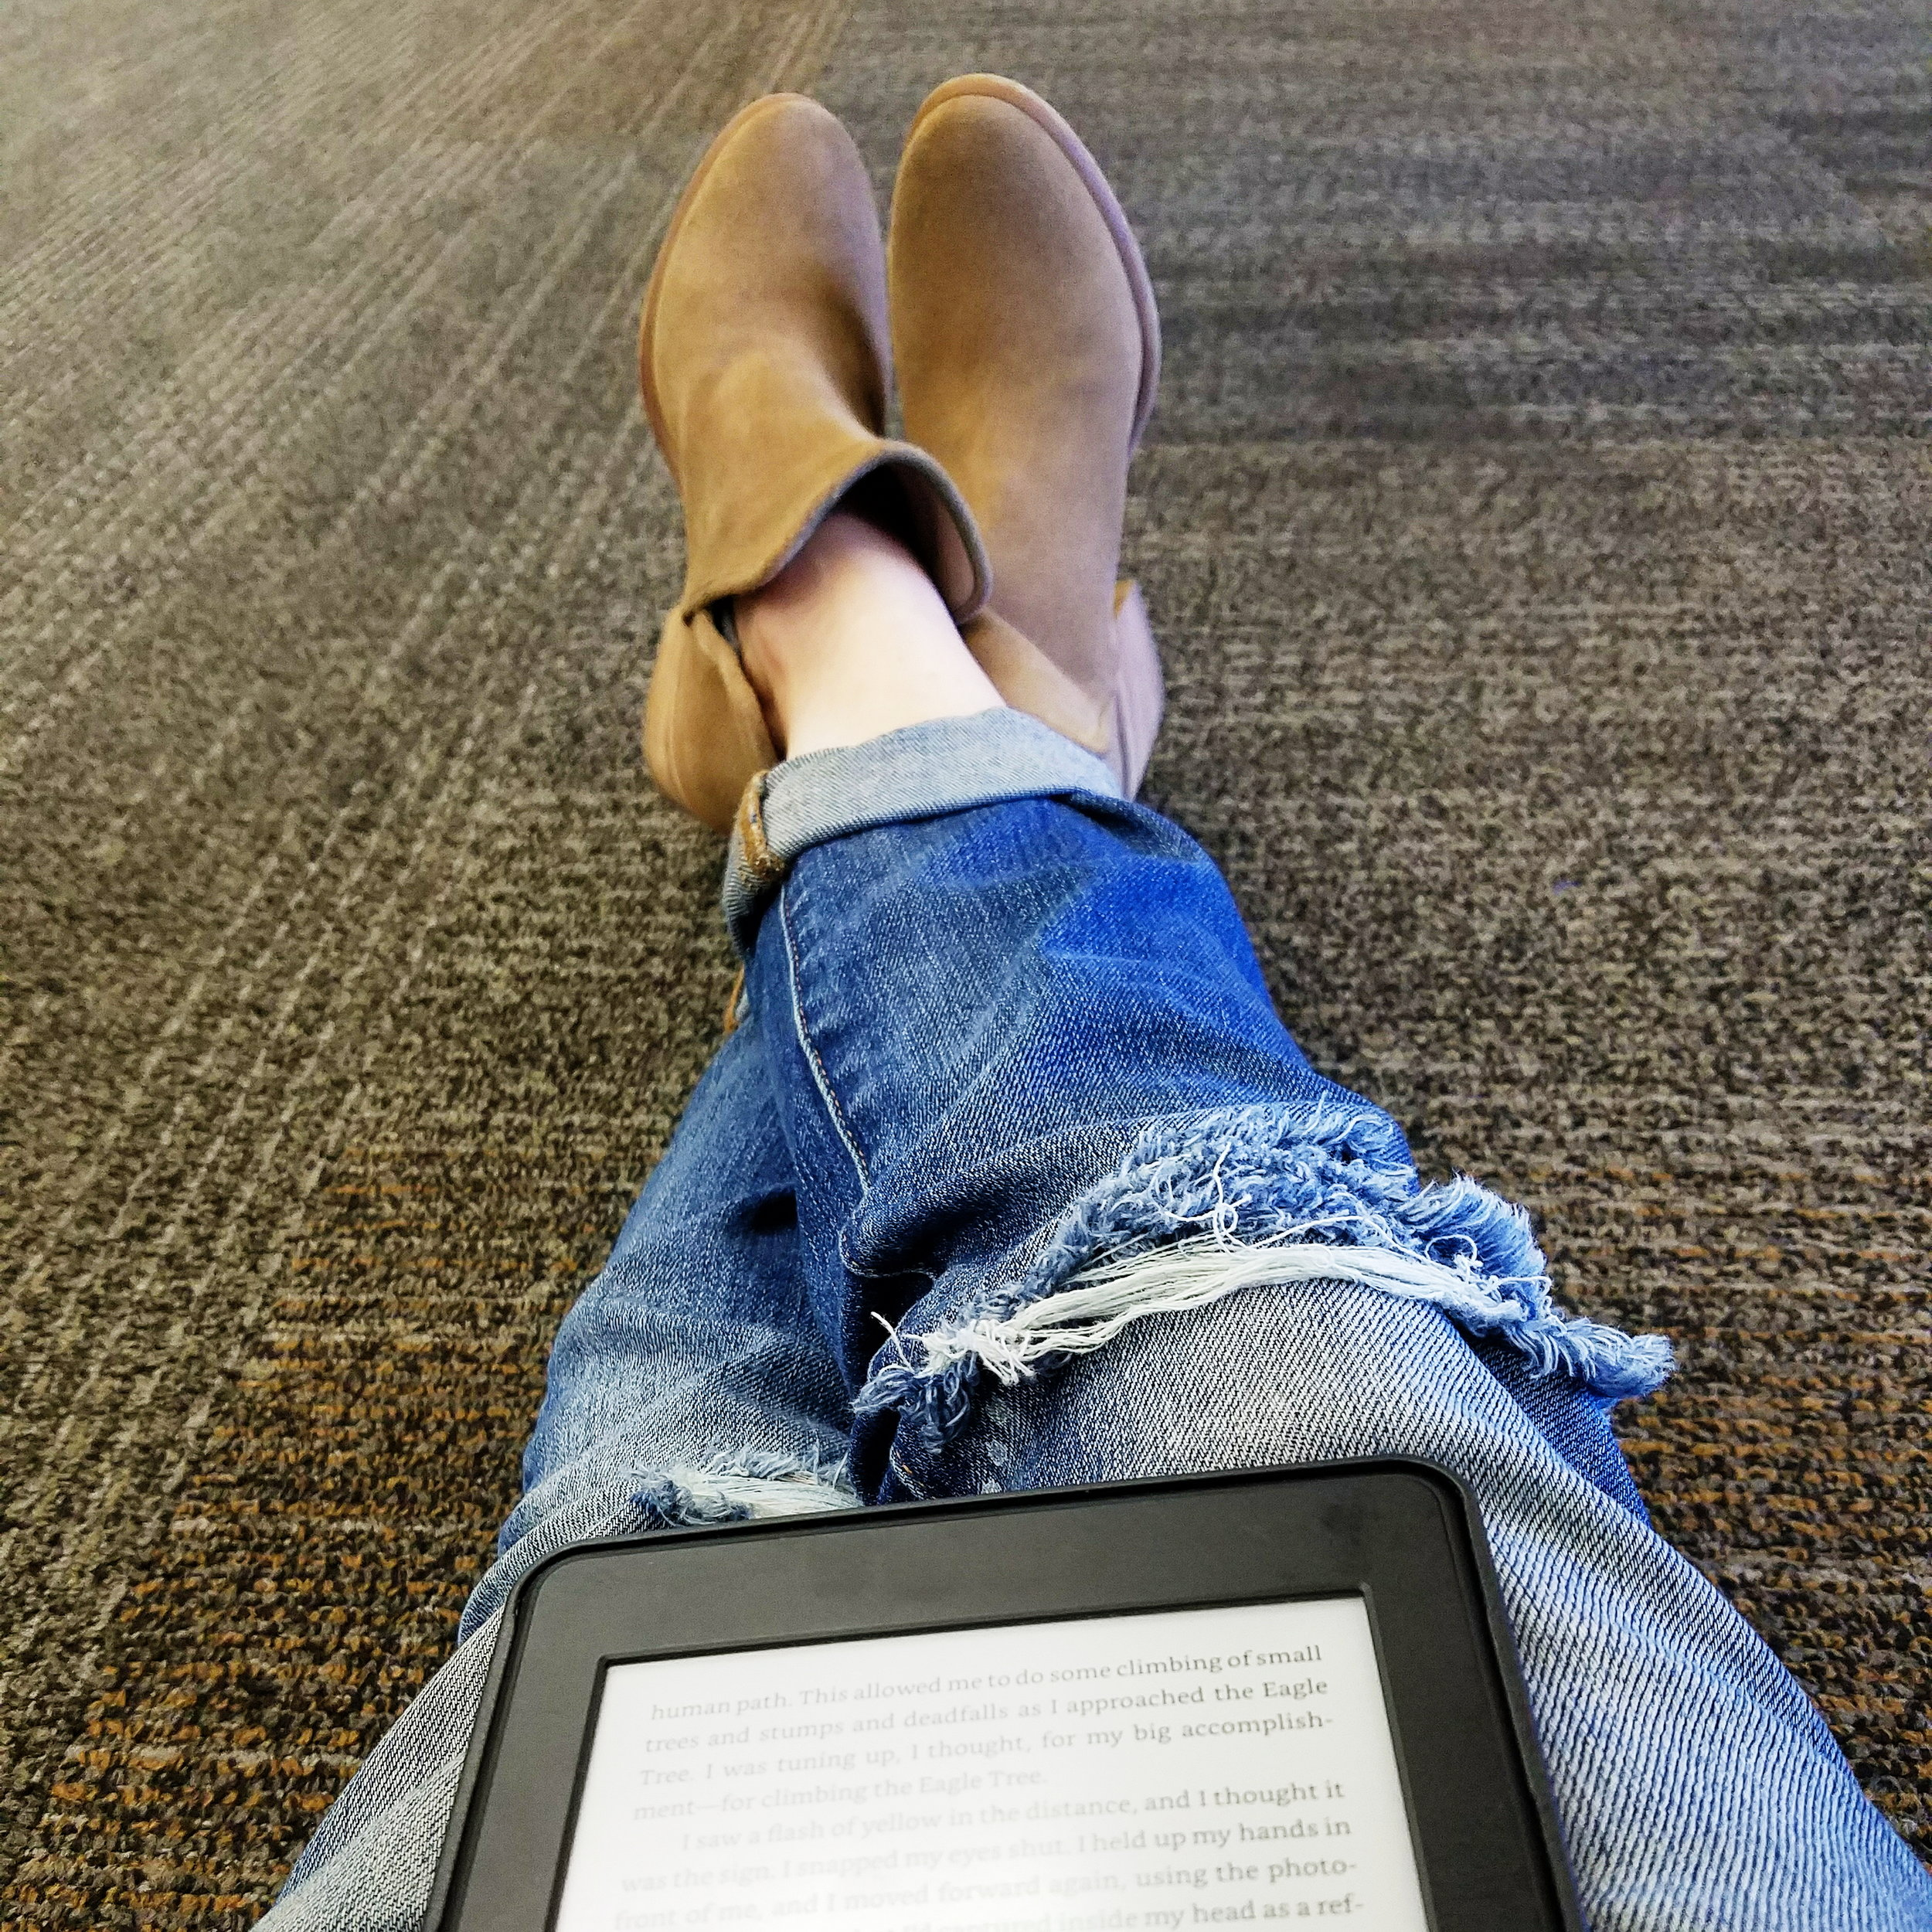 Delayed flight + tiny gate seating area = reading on the airport floor for 2 hours